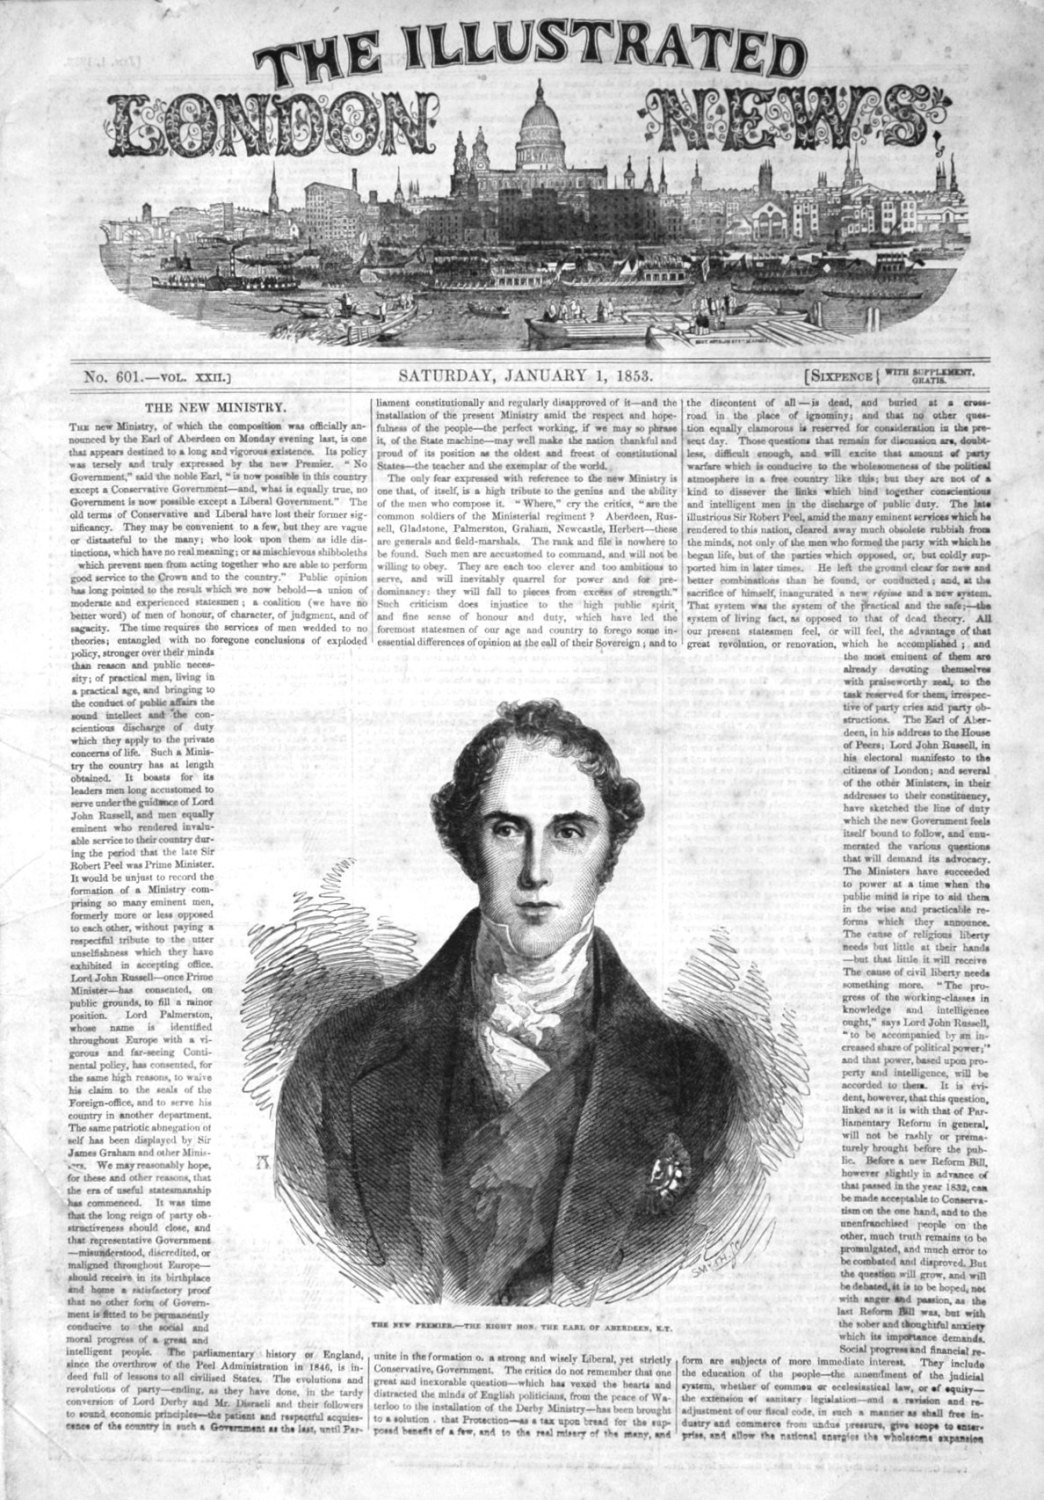 Illustrated London News for January 1st 1853.